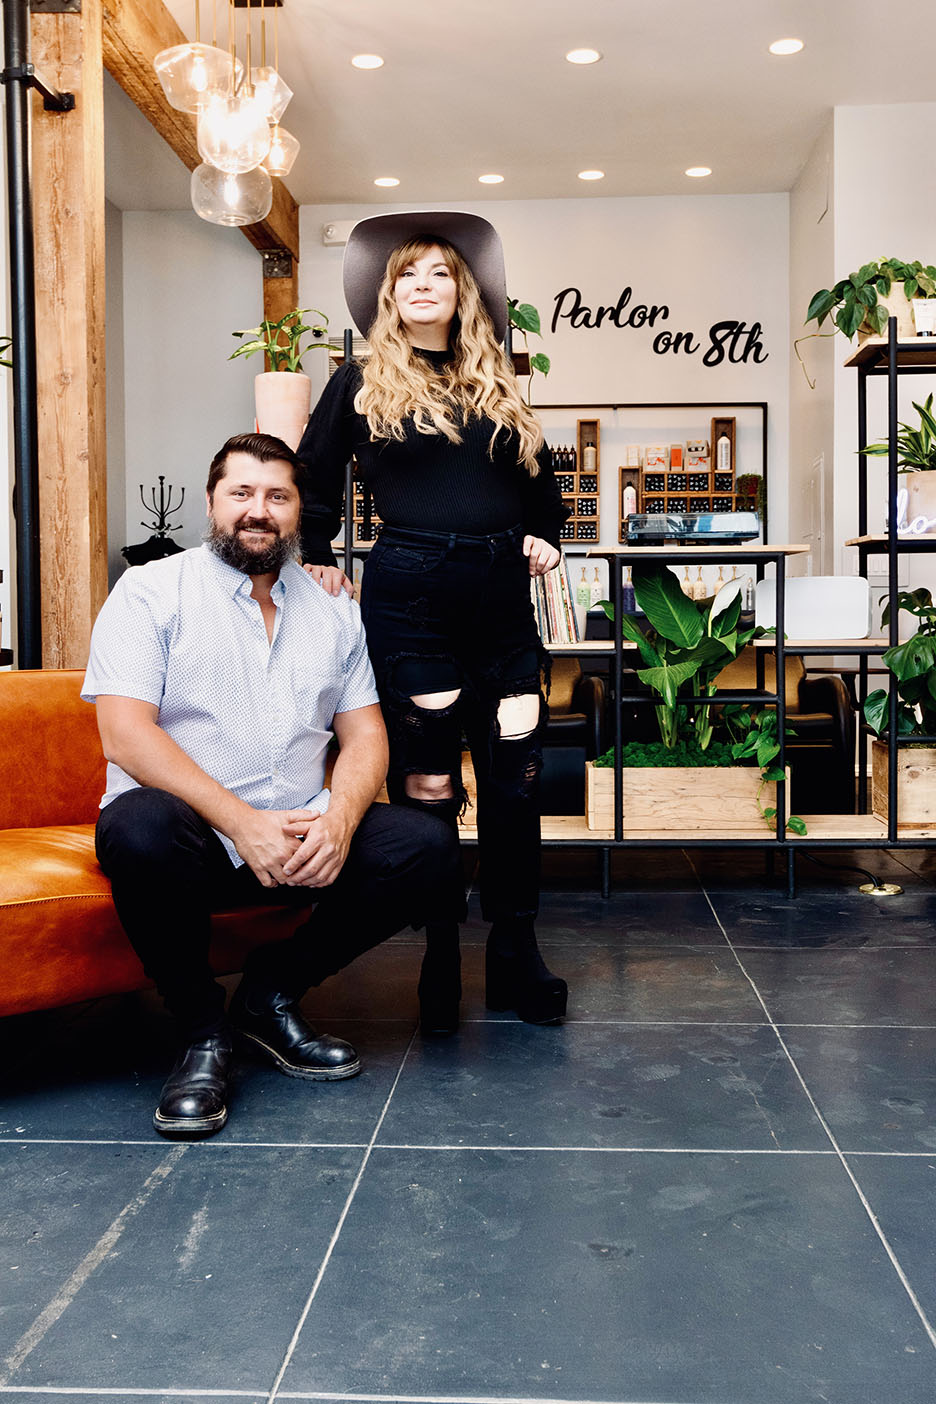 Sophie and Andrew Davies at The Hair Parlor On 8th in Los Angeles